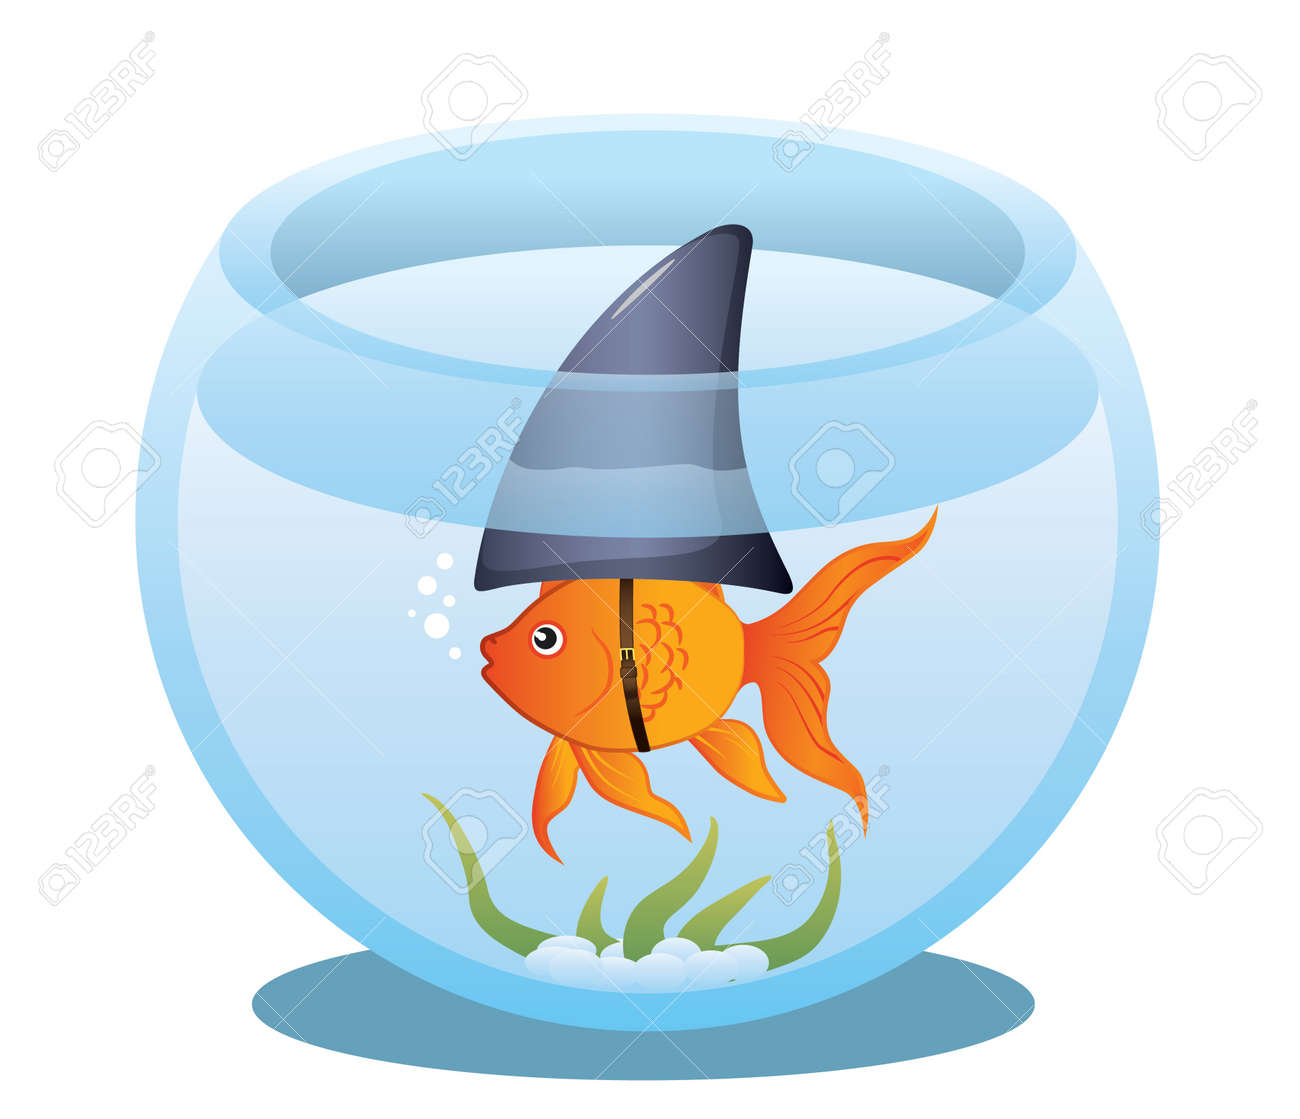 A cute little goldfish in a fish bowl wearing a shark fin to scare predators away. Stock Vector - 8598770